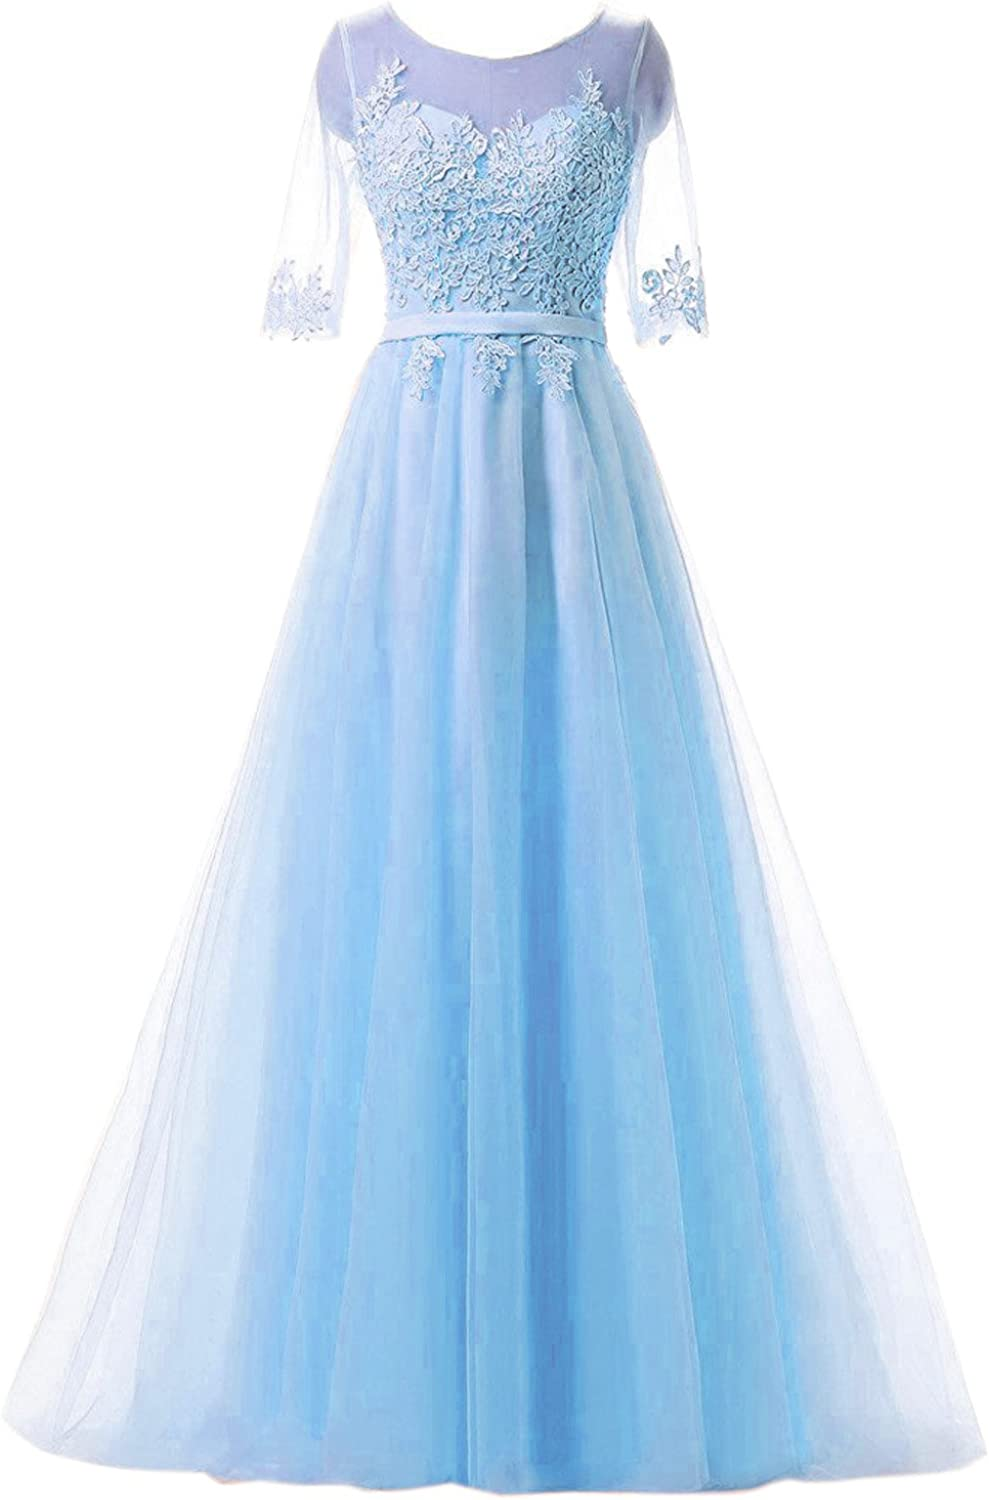 Belle House Long Prom Dresses For Women Sheer Neck Mother Of The Brides Dresses With